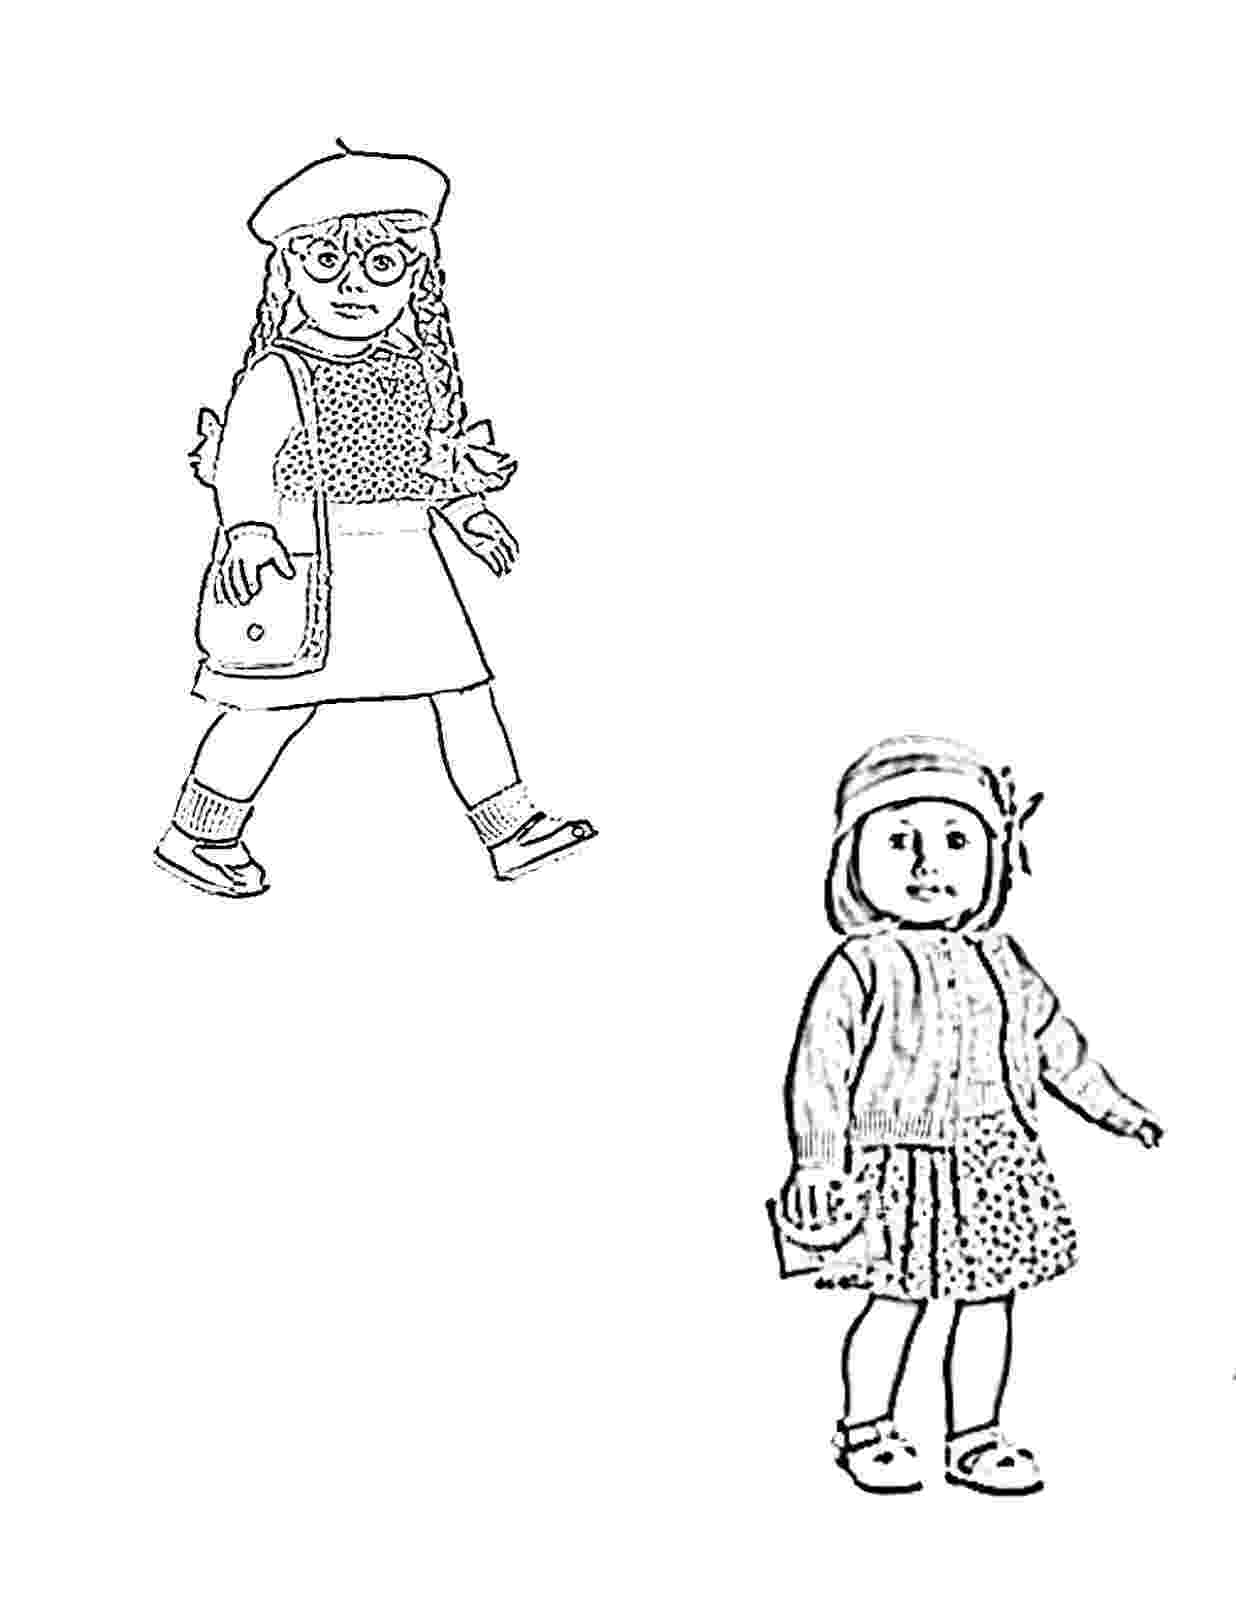 american girl coloring american girl doll coloring pages to download and print american girl coloring